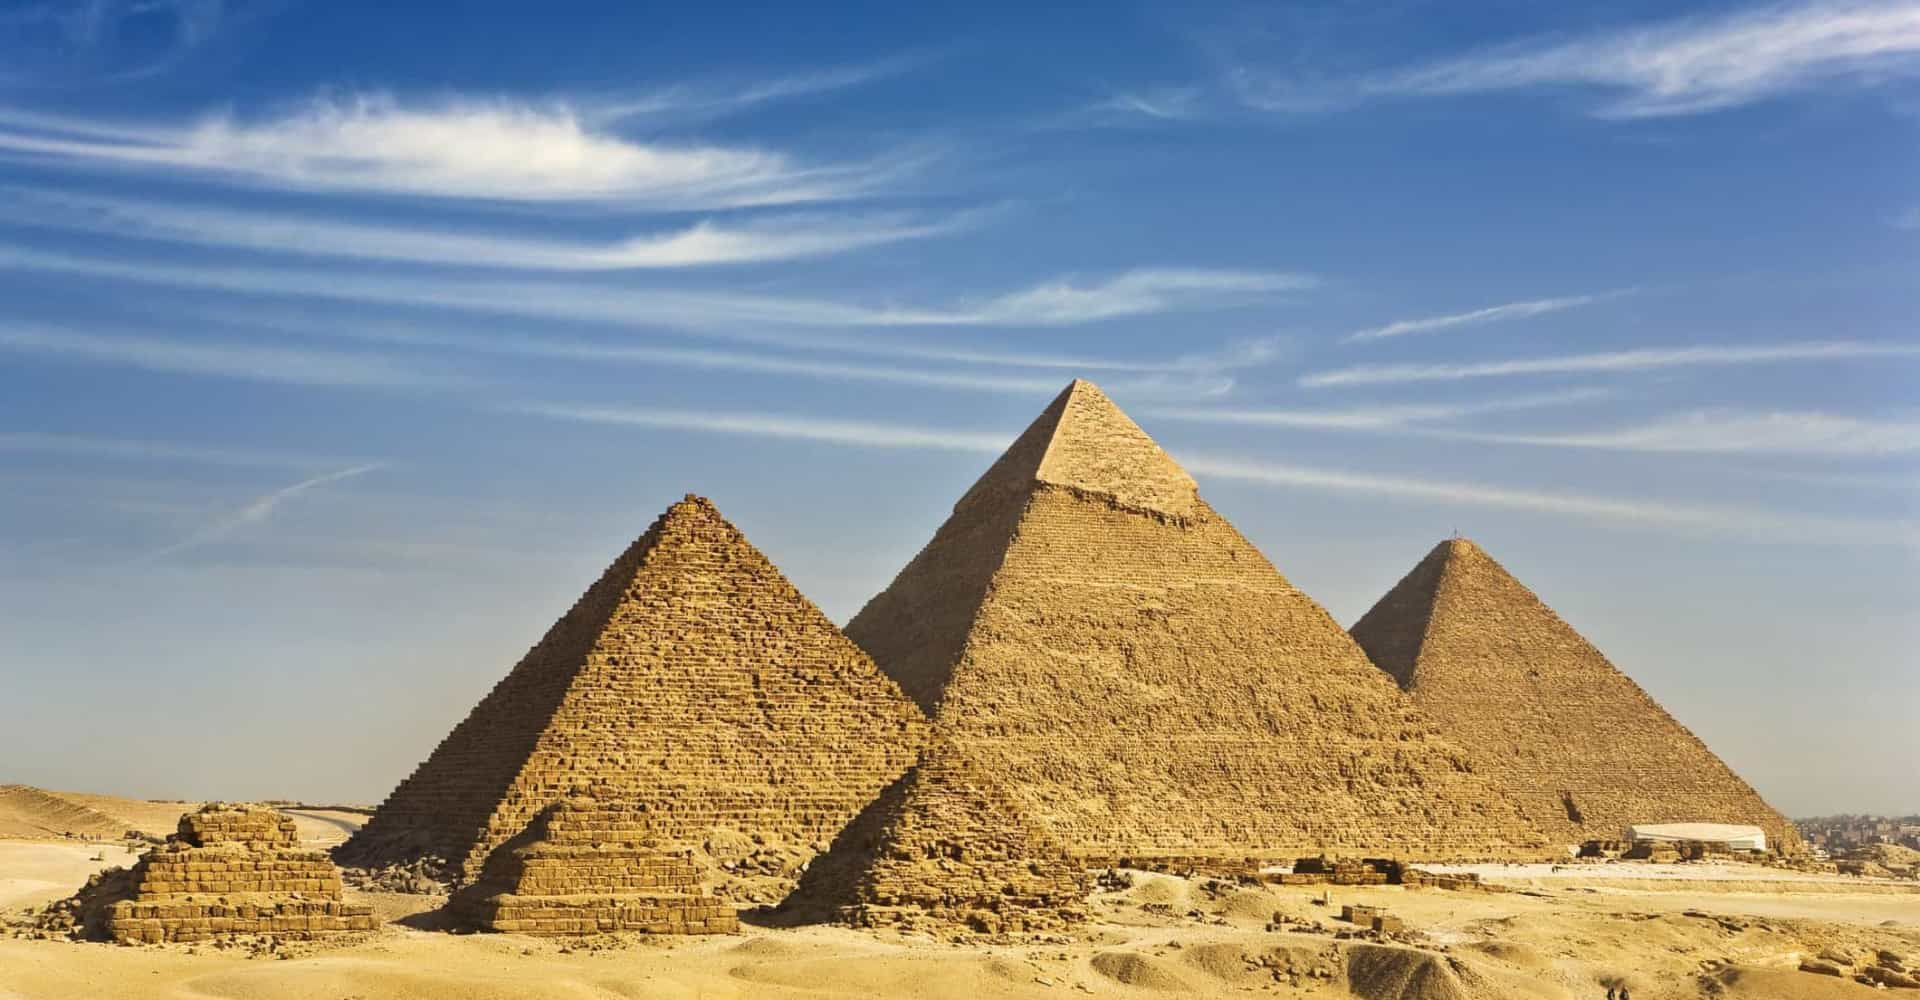 The Pyramids of Giza: everything you need to know